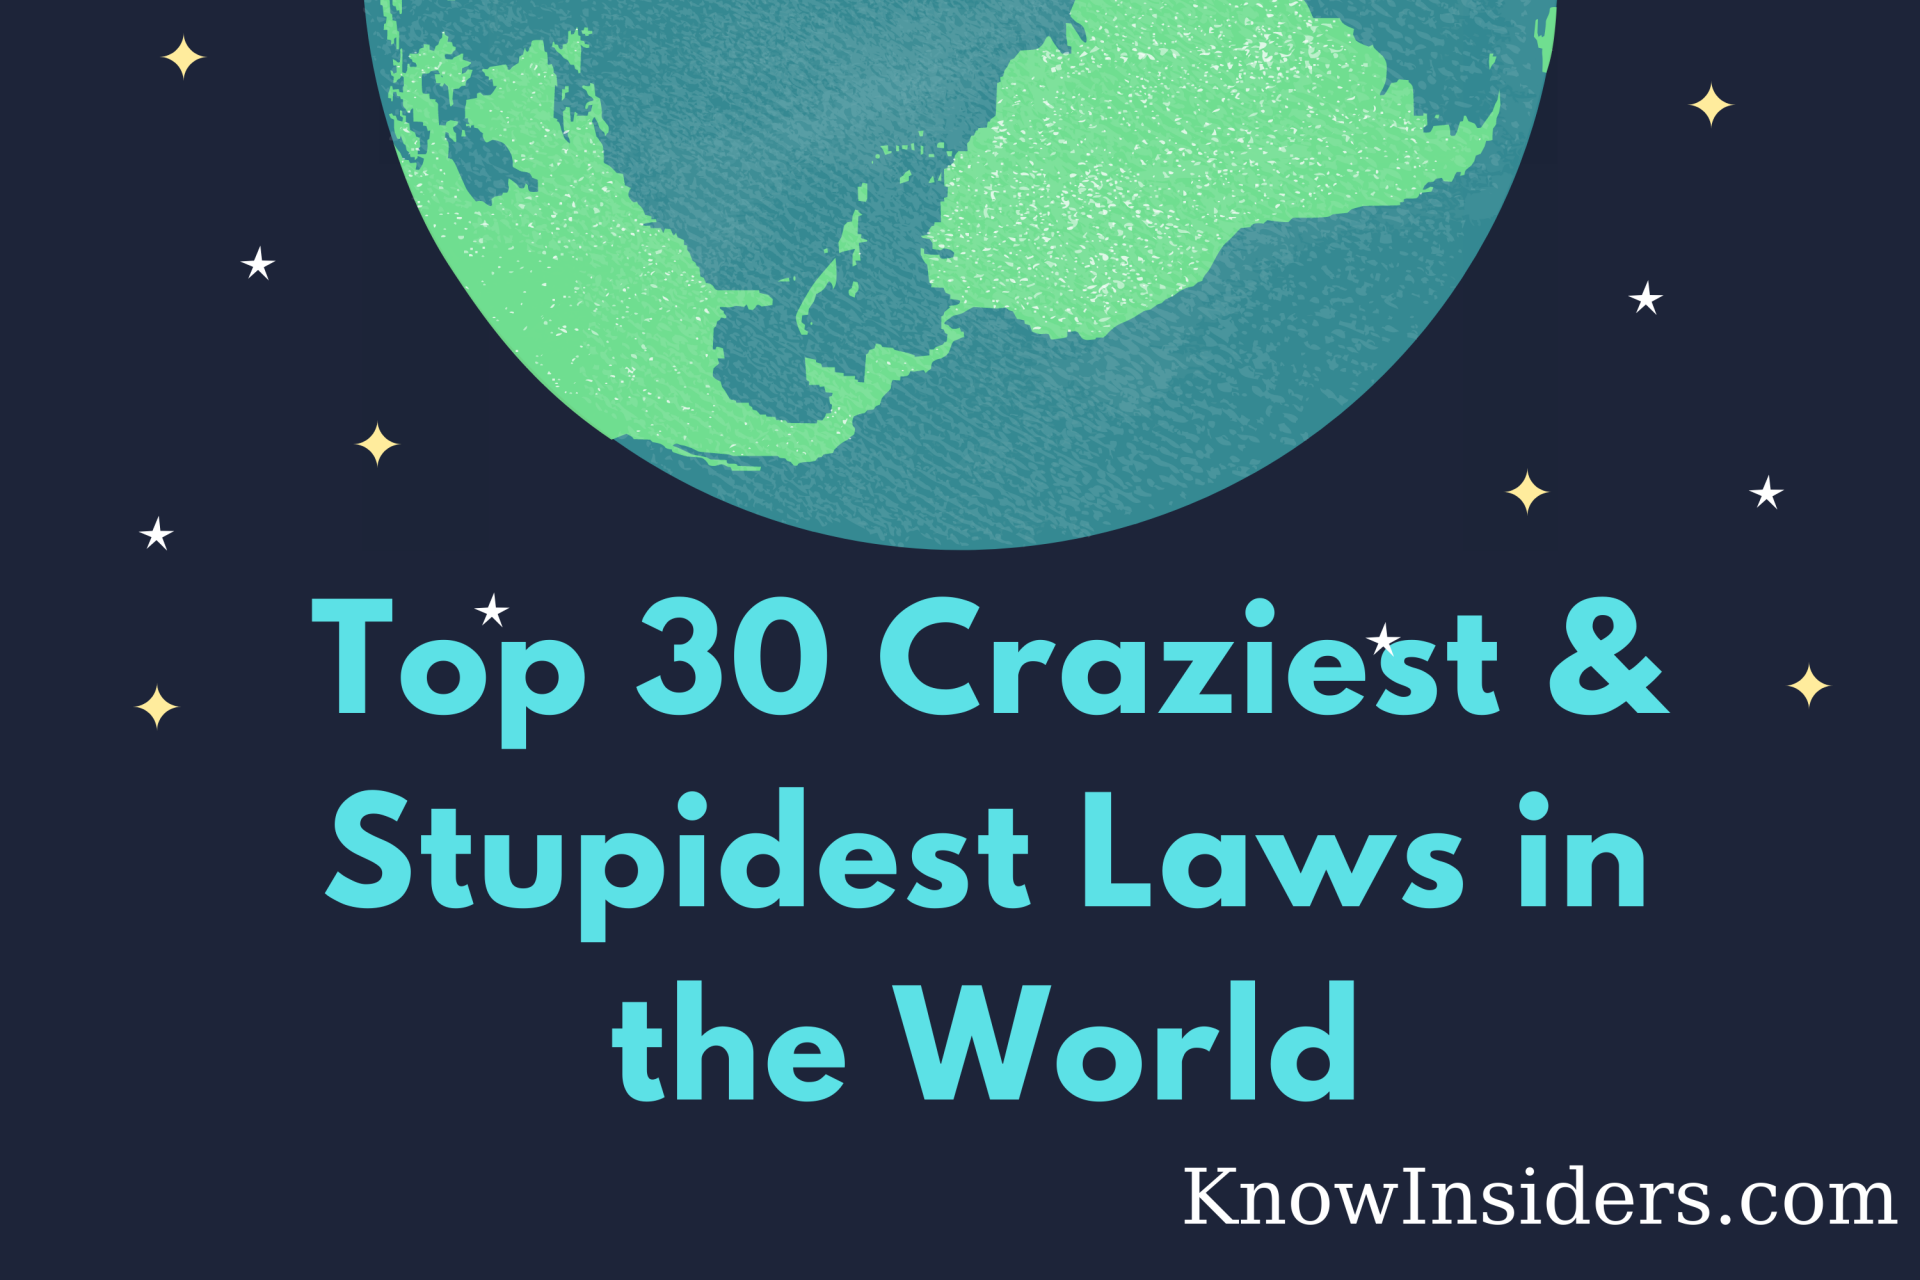 Top 30 Craziest & Stupidest Laws in the World